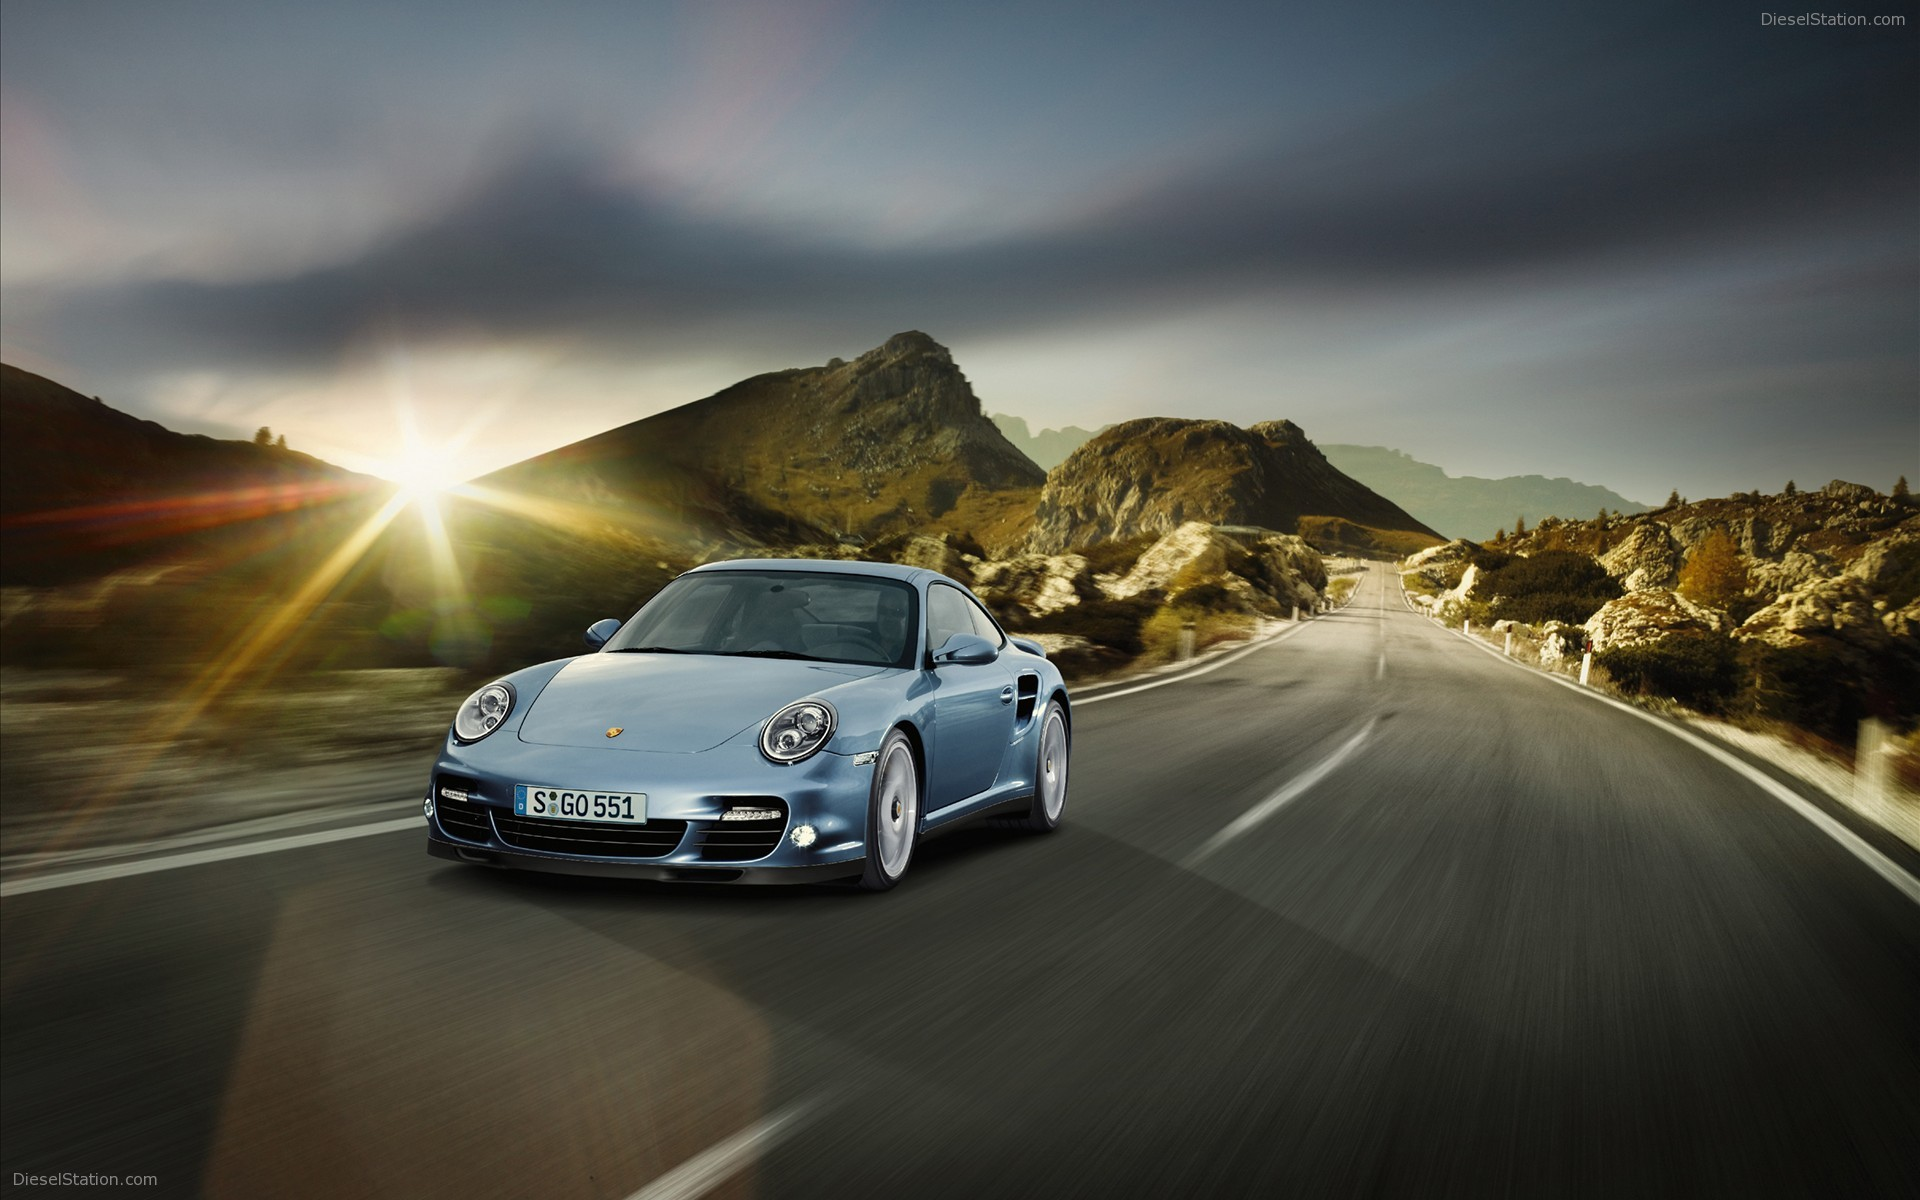 Porsche Wallpapers High Resolution